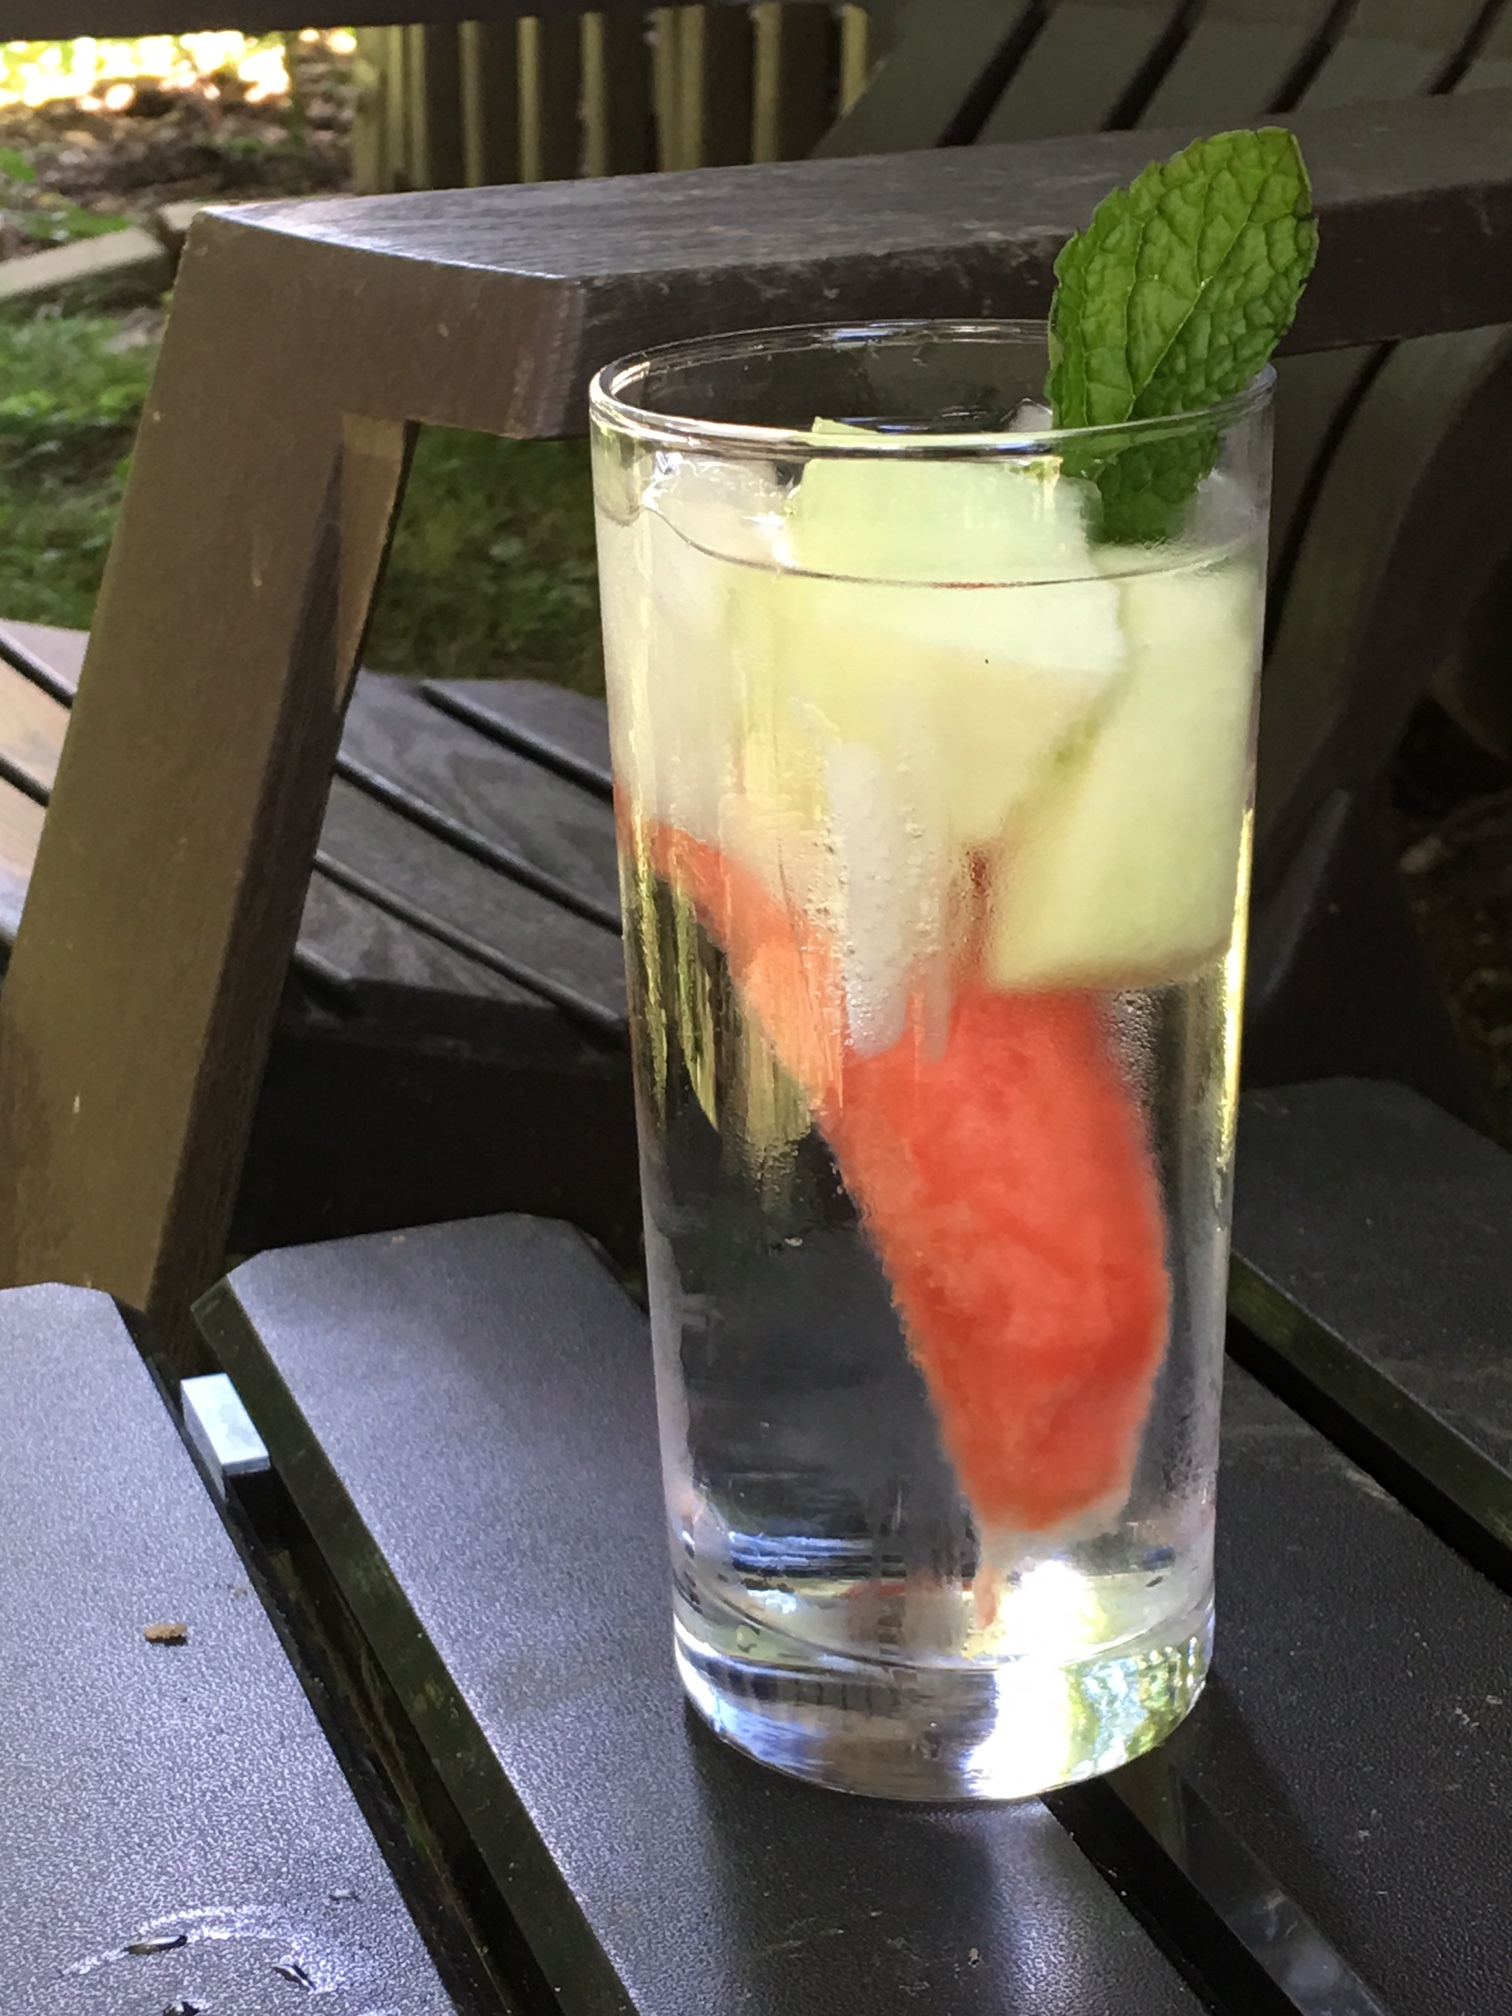 Watermelon, honeydew melon and mint water waiting on the gardener. Let it infuse while you work.